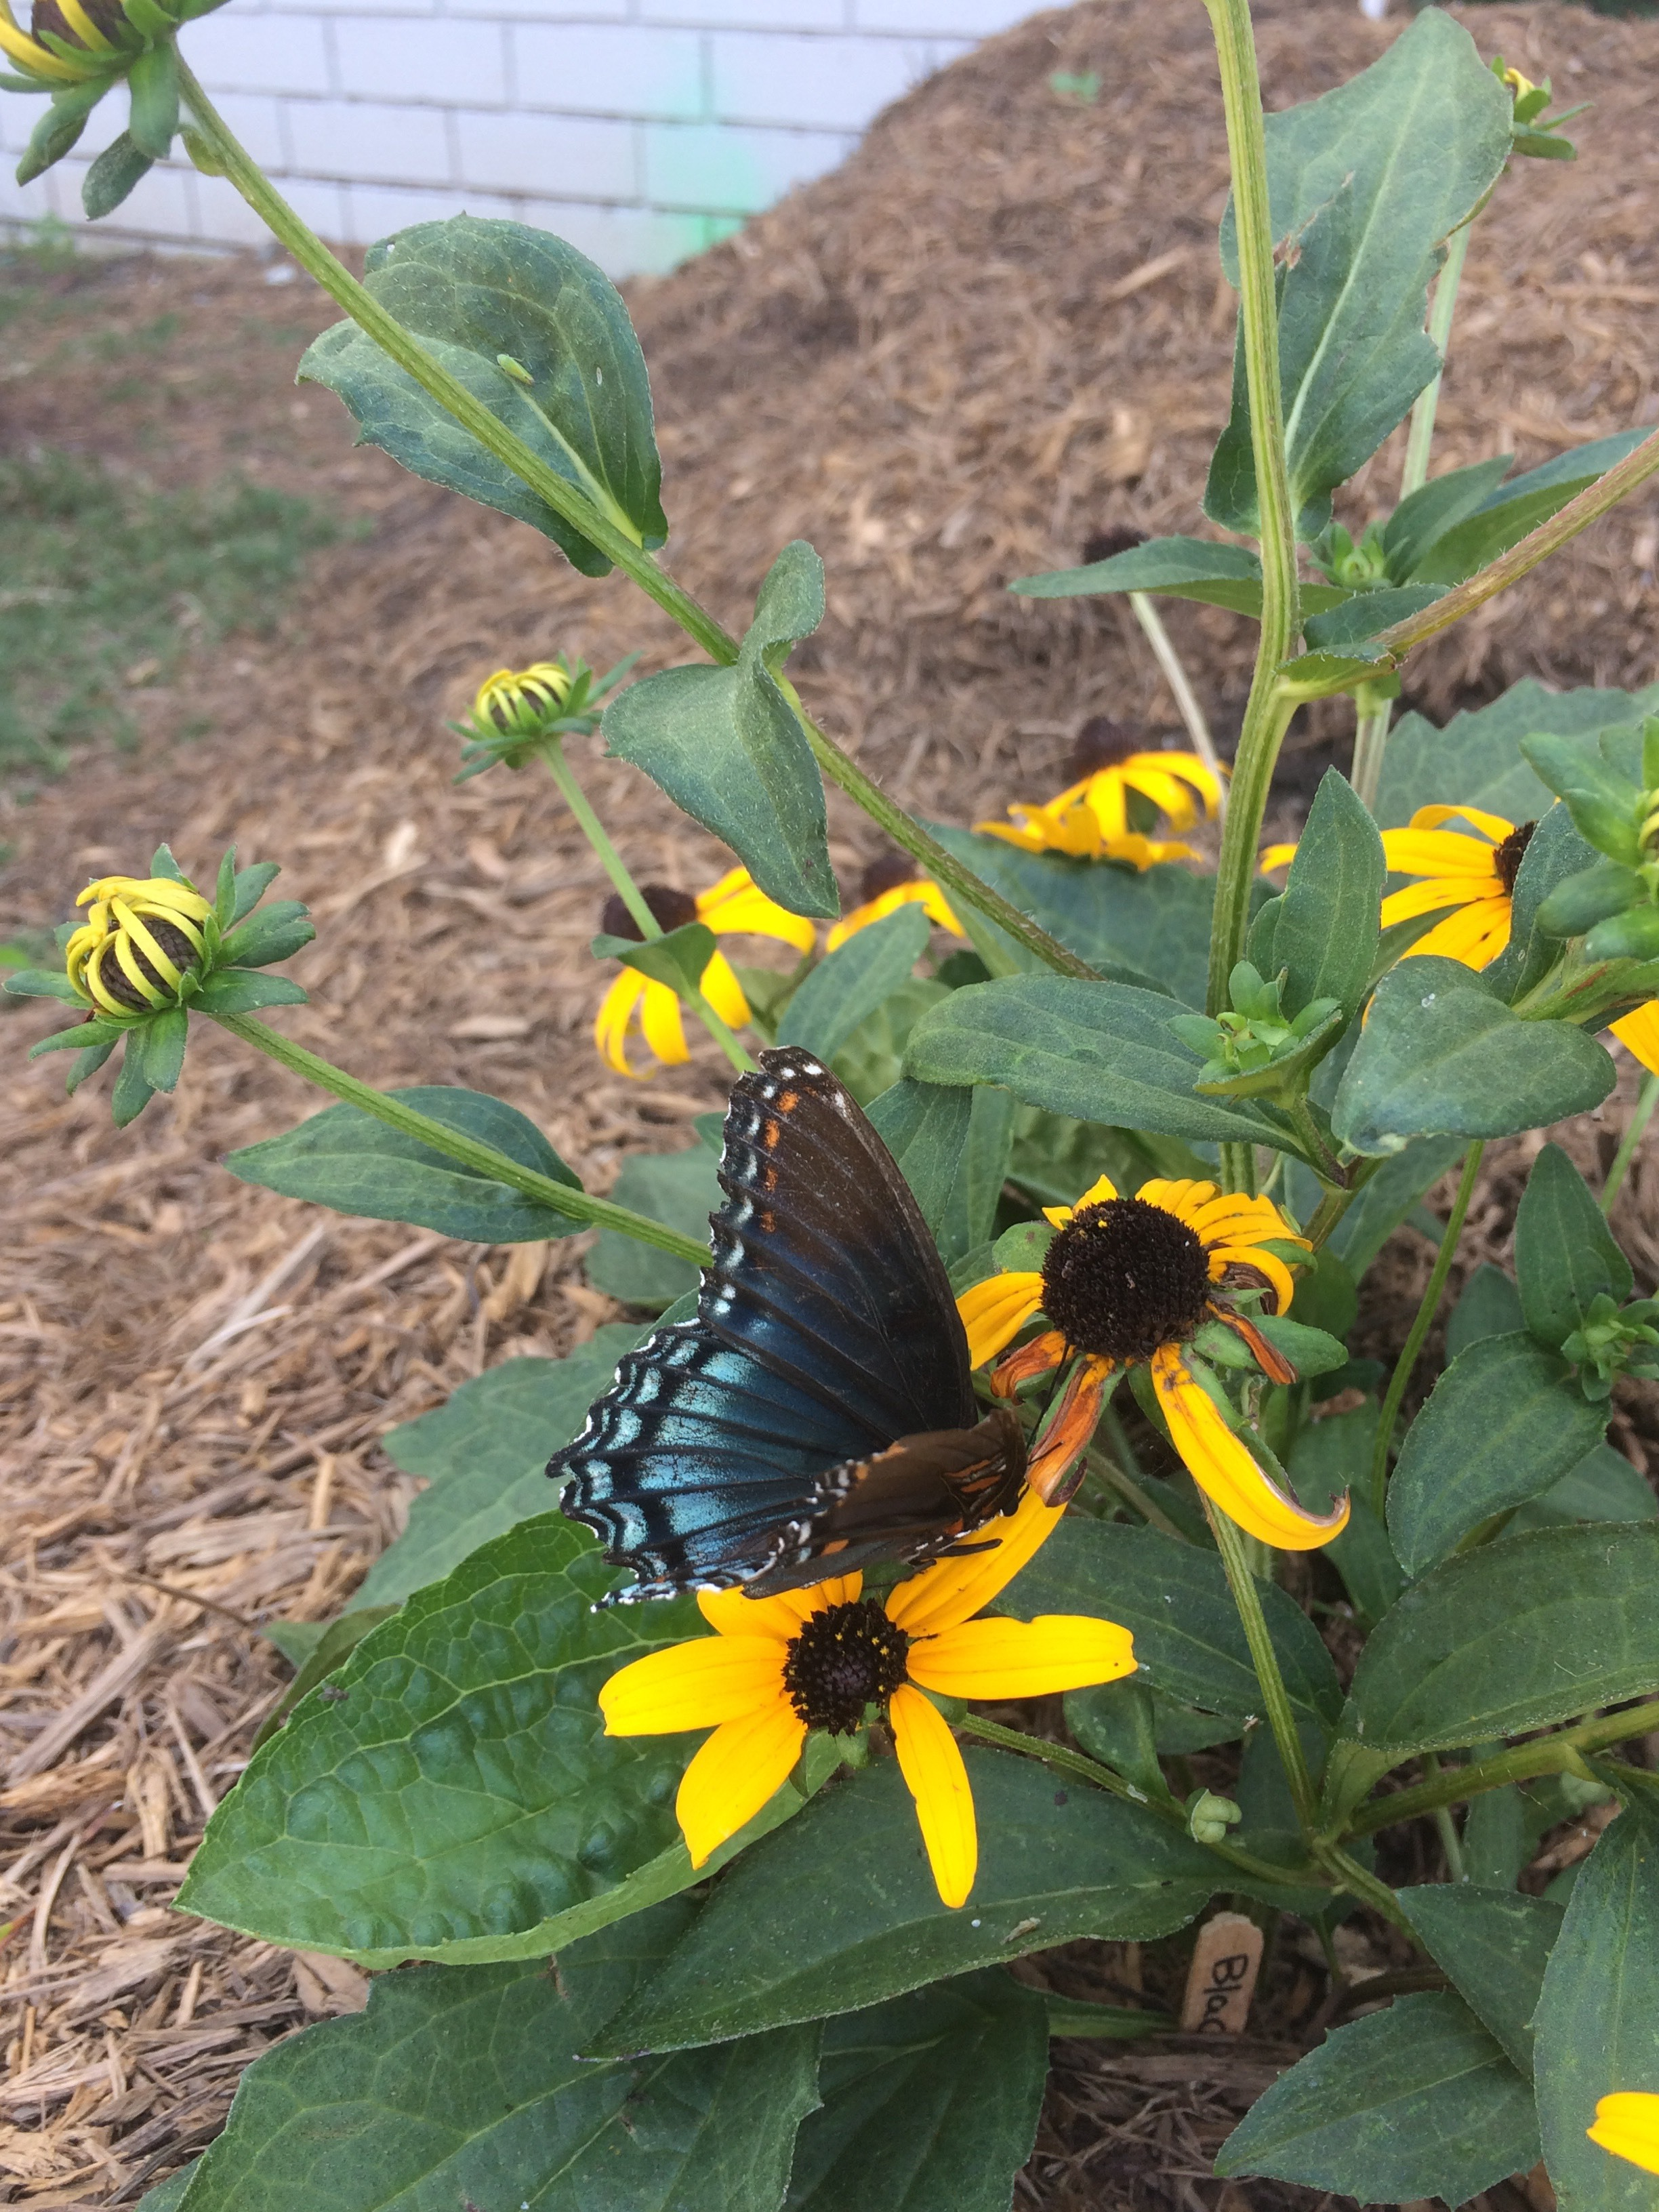 Red-Spotted Purple Butterfly on Black-Eyed Susan